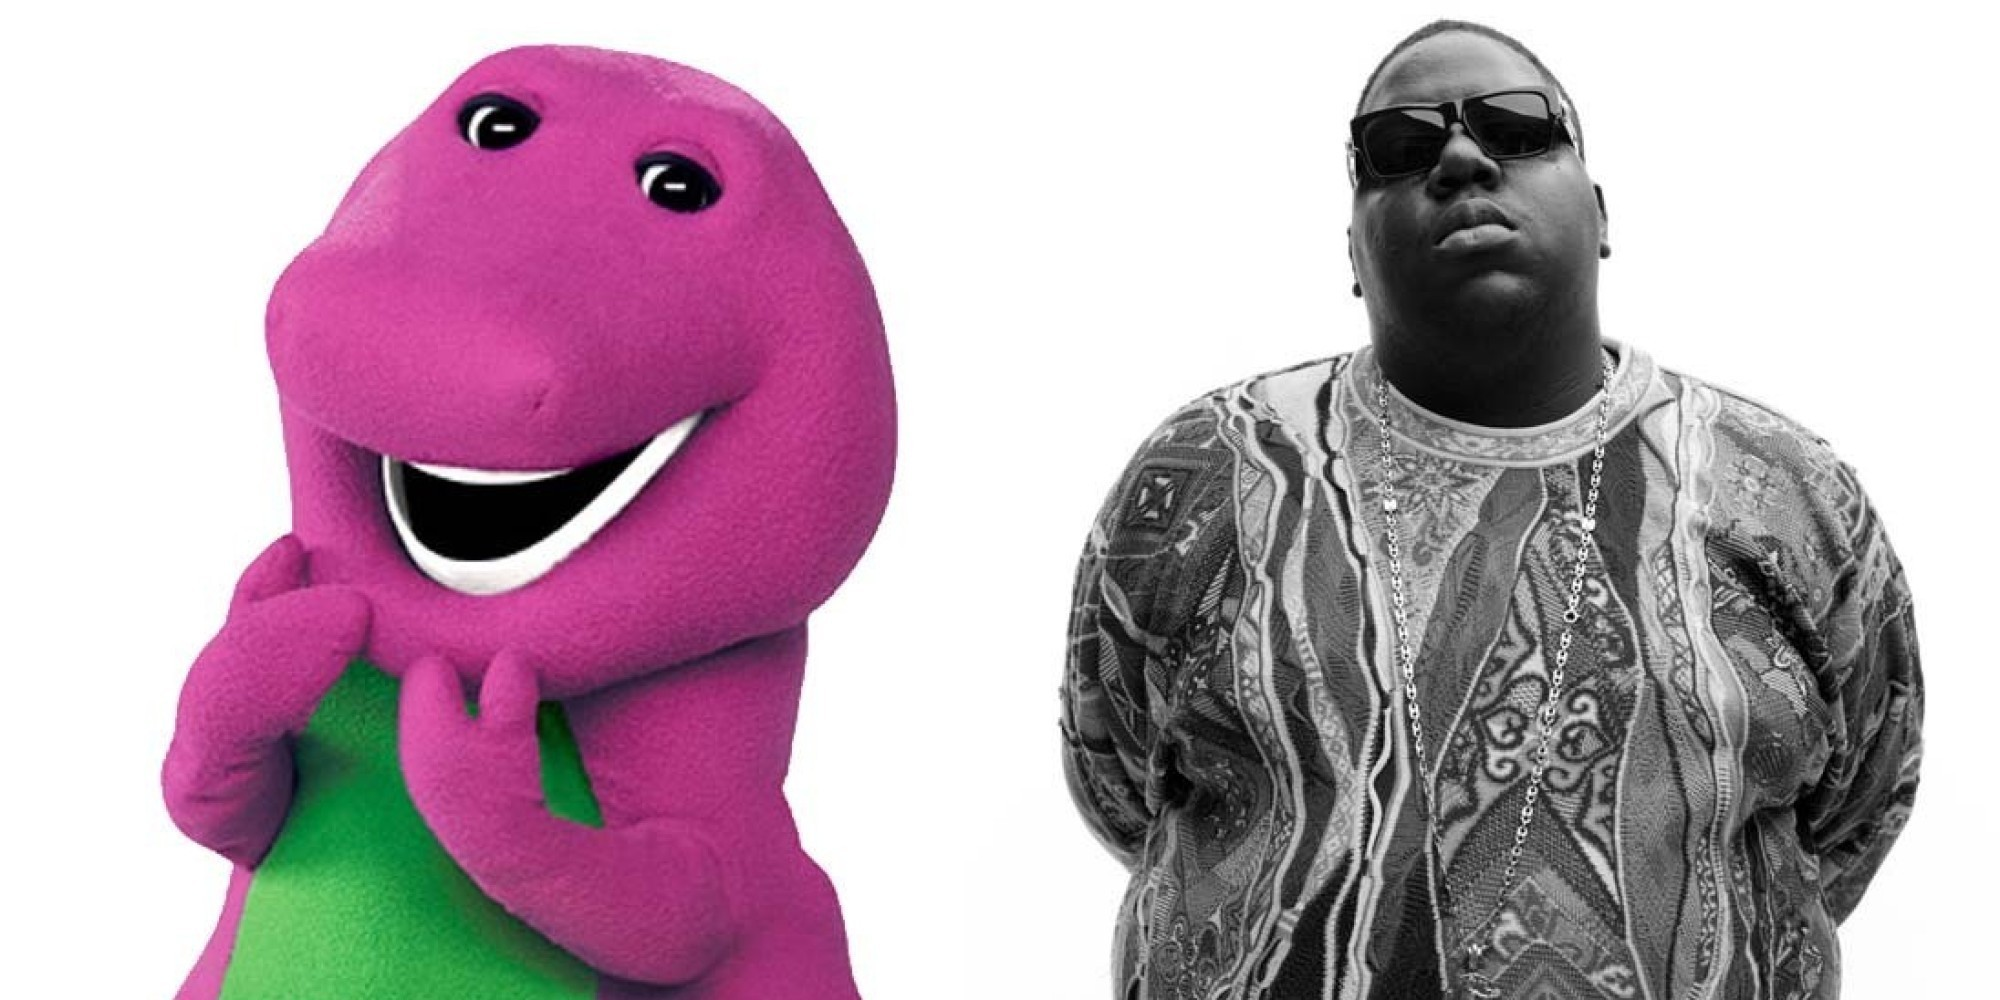 You'll Never Look At Barney The Same After You Watch This Notorious B.I.G. Big Poppa Mashup